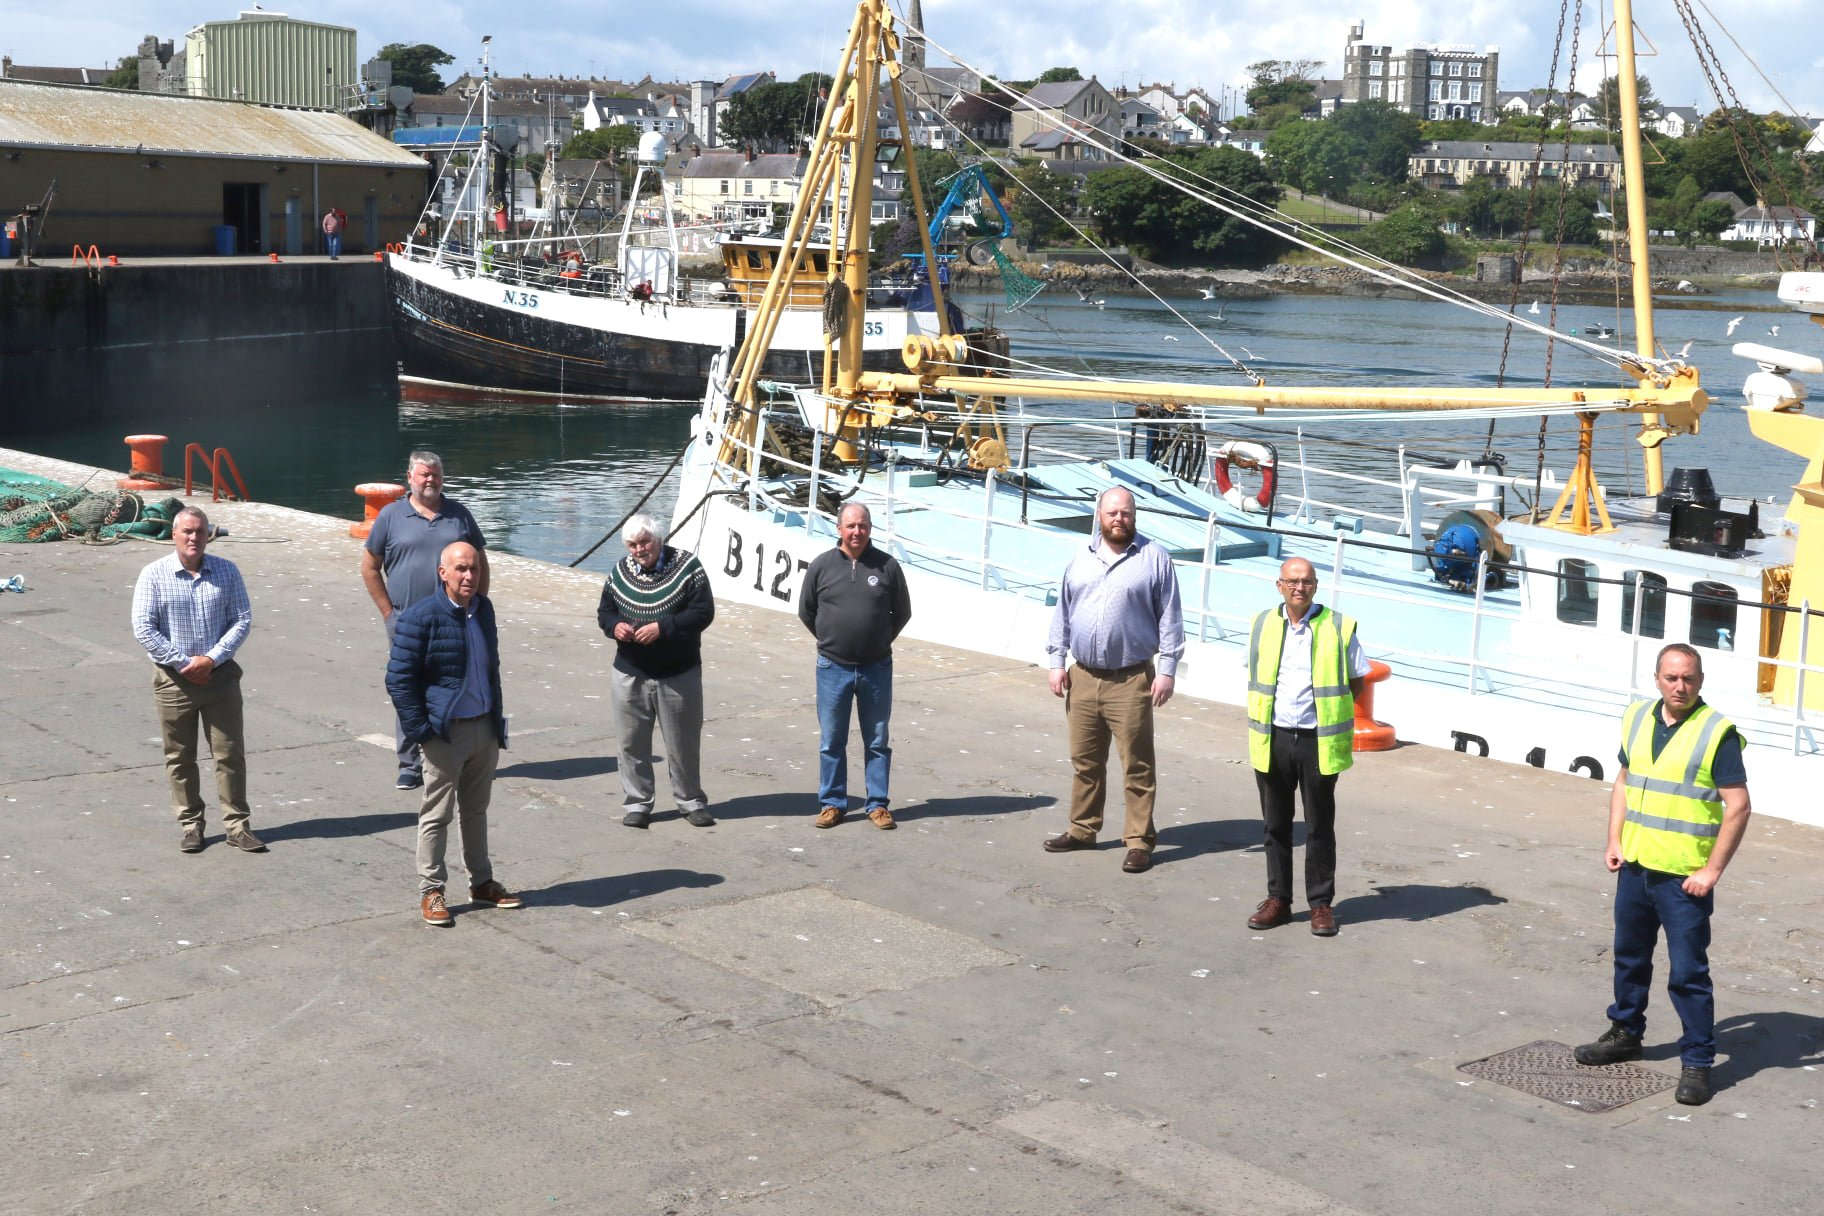 DAERA Official meet with Ardglass Harbour Developments Group and key agencies over possible £40m infrastructural improvement plan